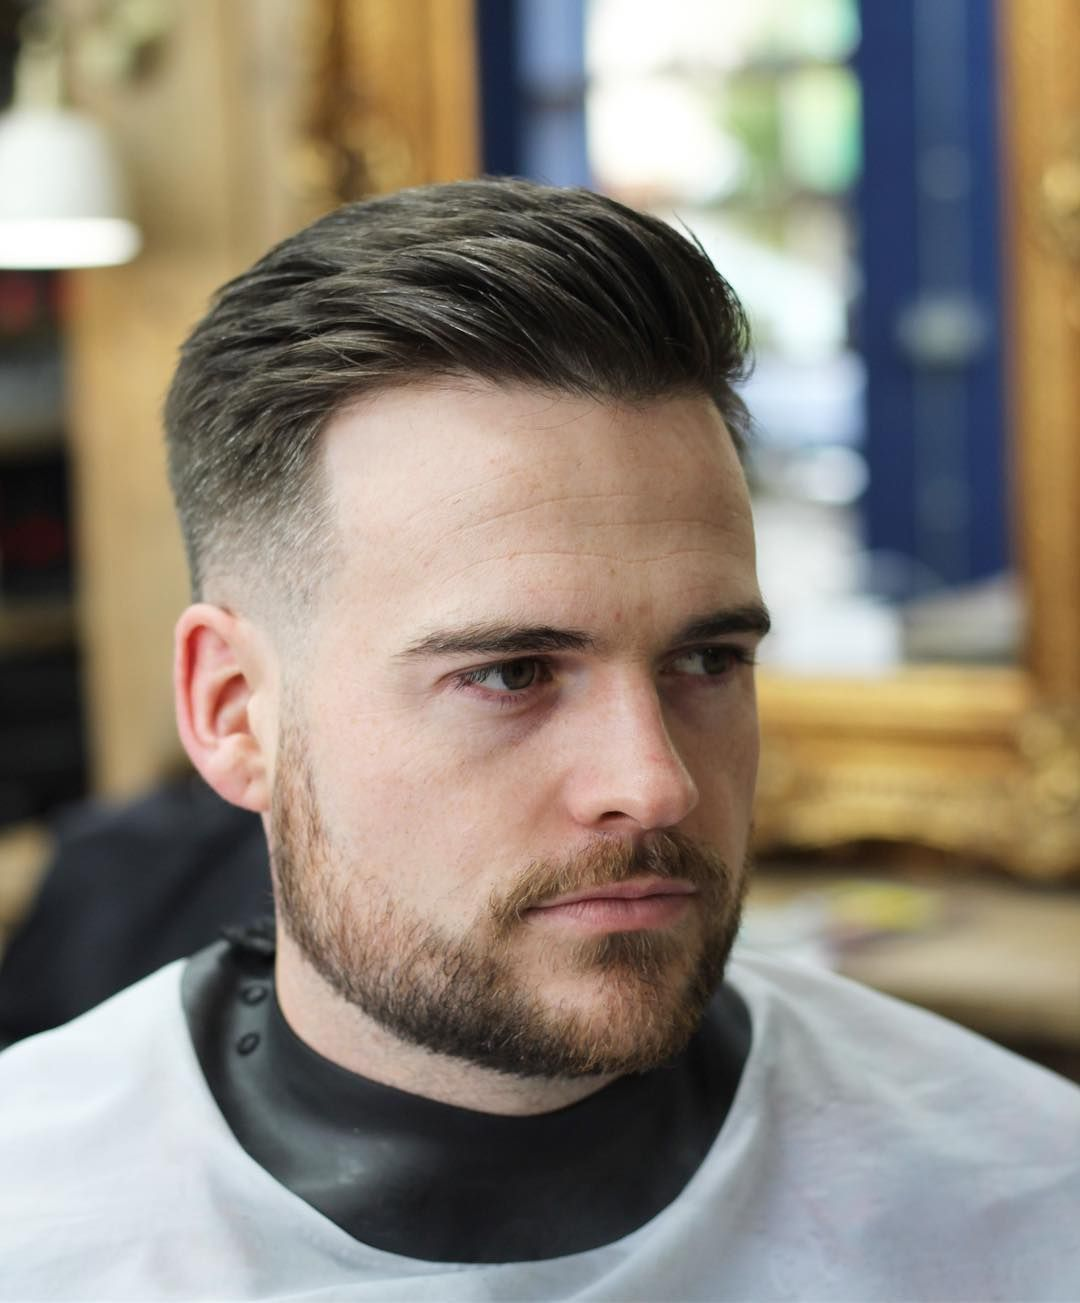 the best barbers + barber shops map (find a quality barber